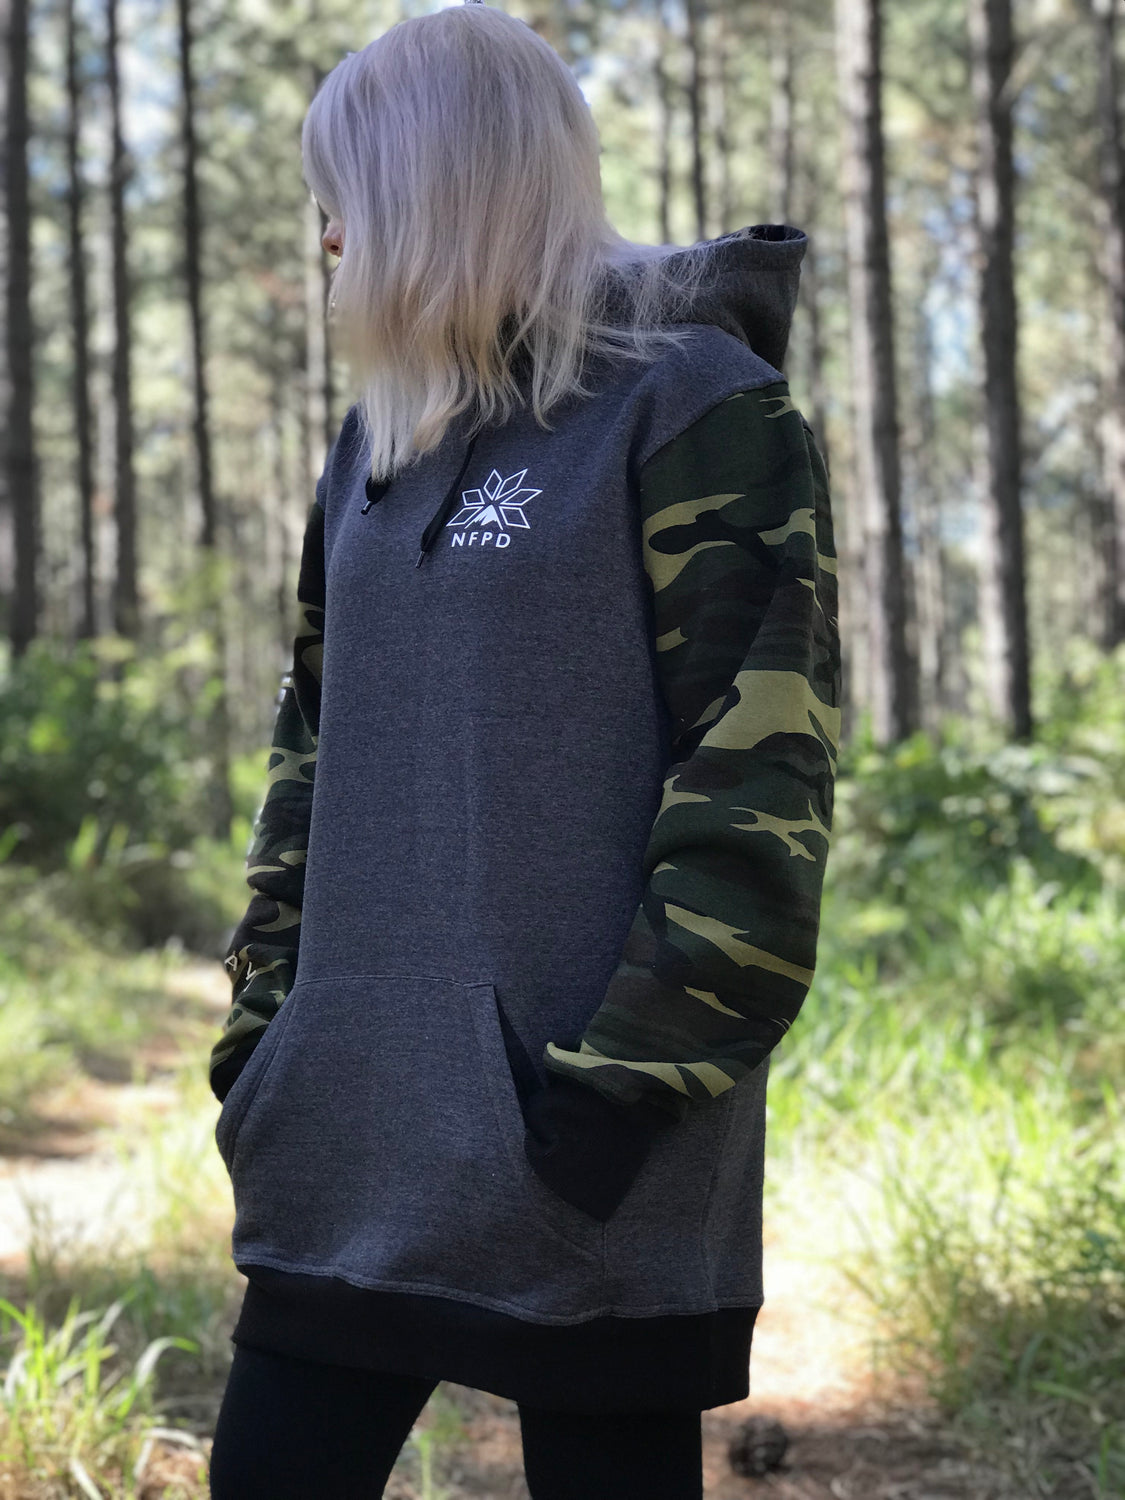 Grey/Camo Tall Hoodie - Unisex (PRE-ORDER SIZES M/L/XL/2XL ONLY)